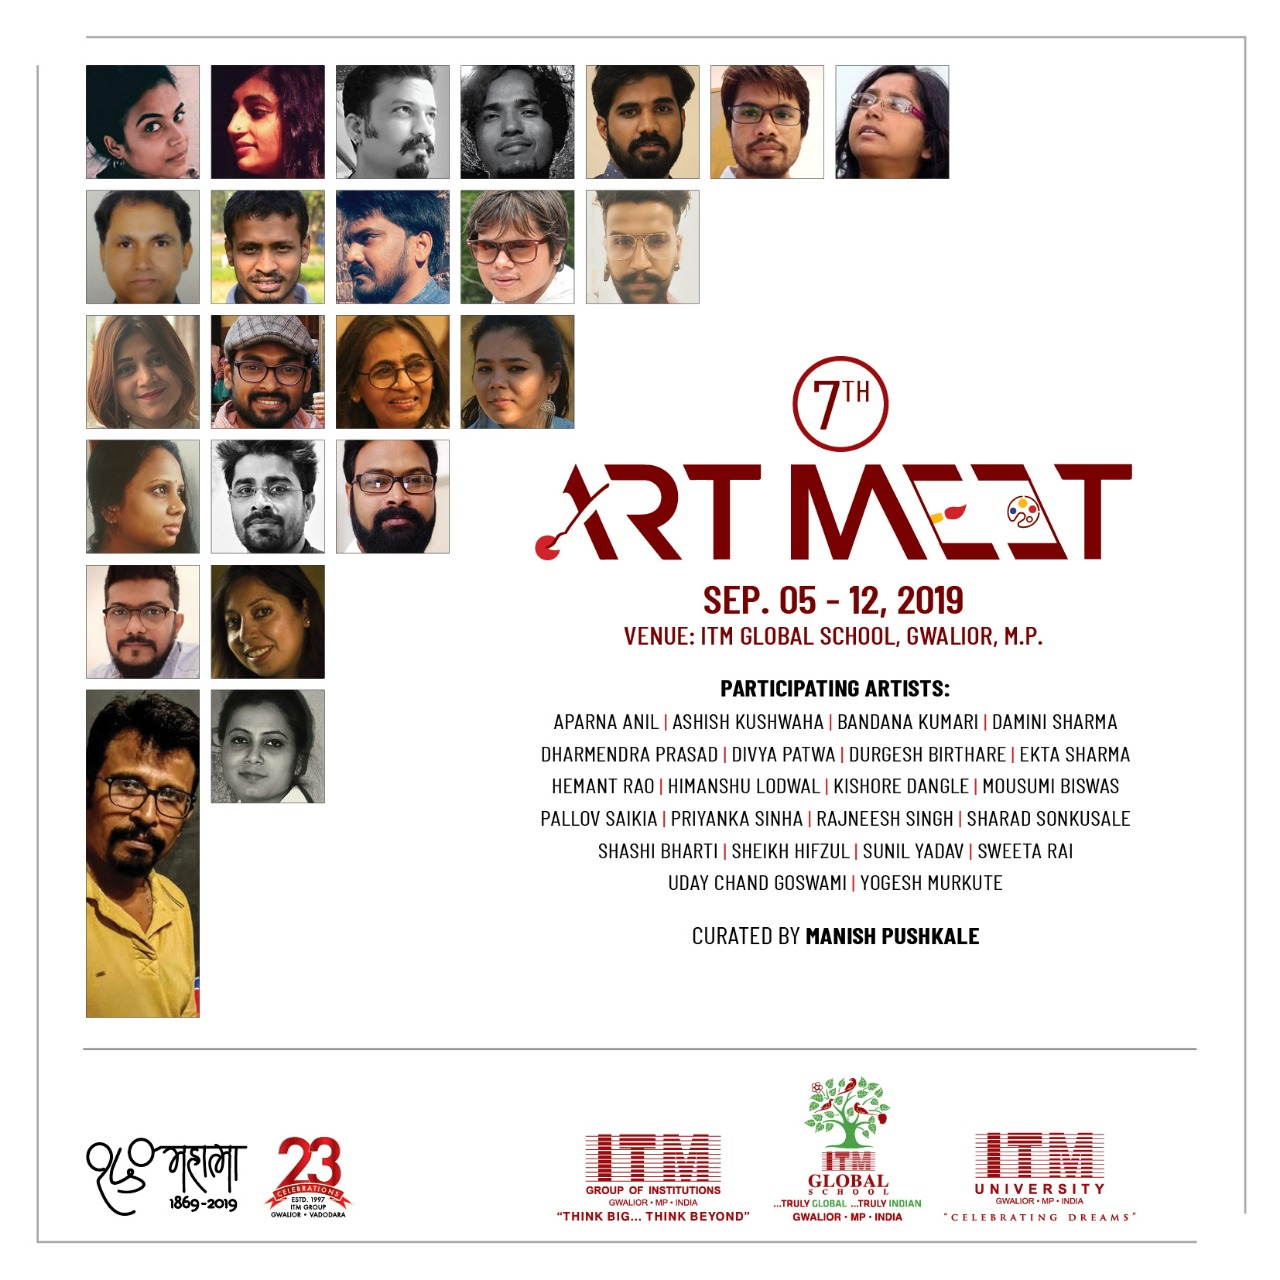 7th Art Meet - Curated by Manish Pushkale